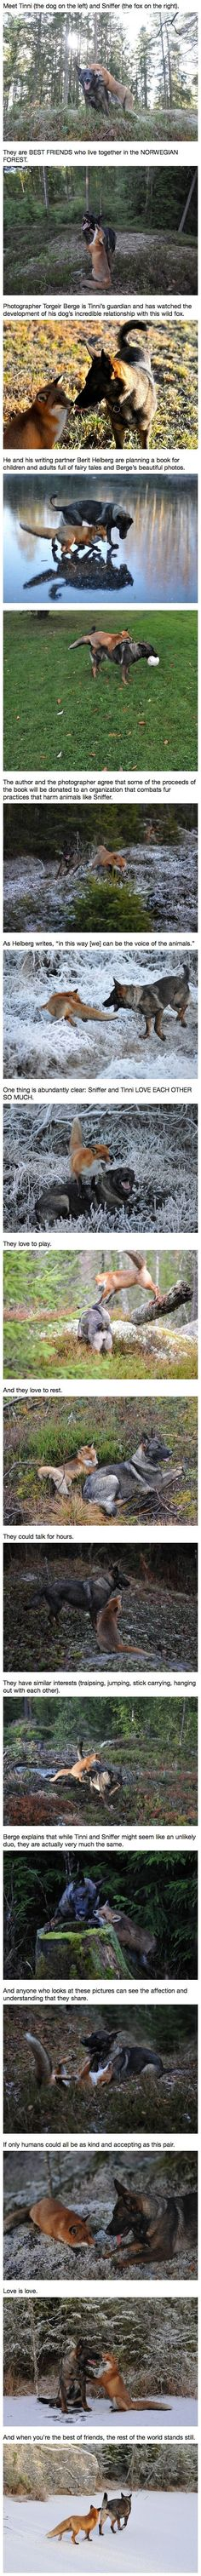 Real-Life Fox And The Hound Best Friends Will Melt Your Heart: